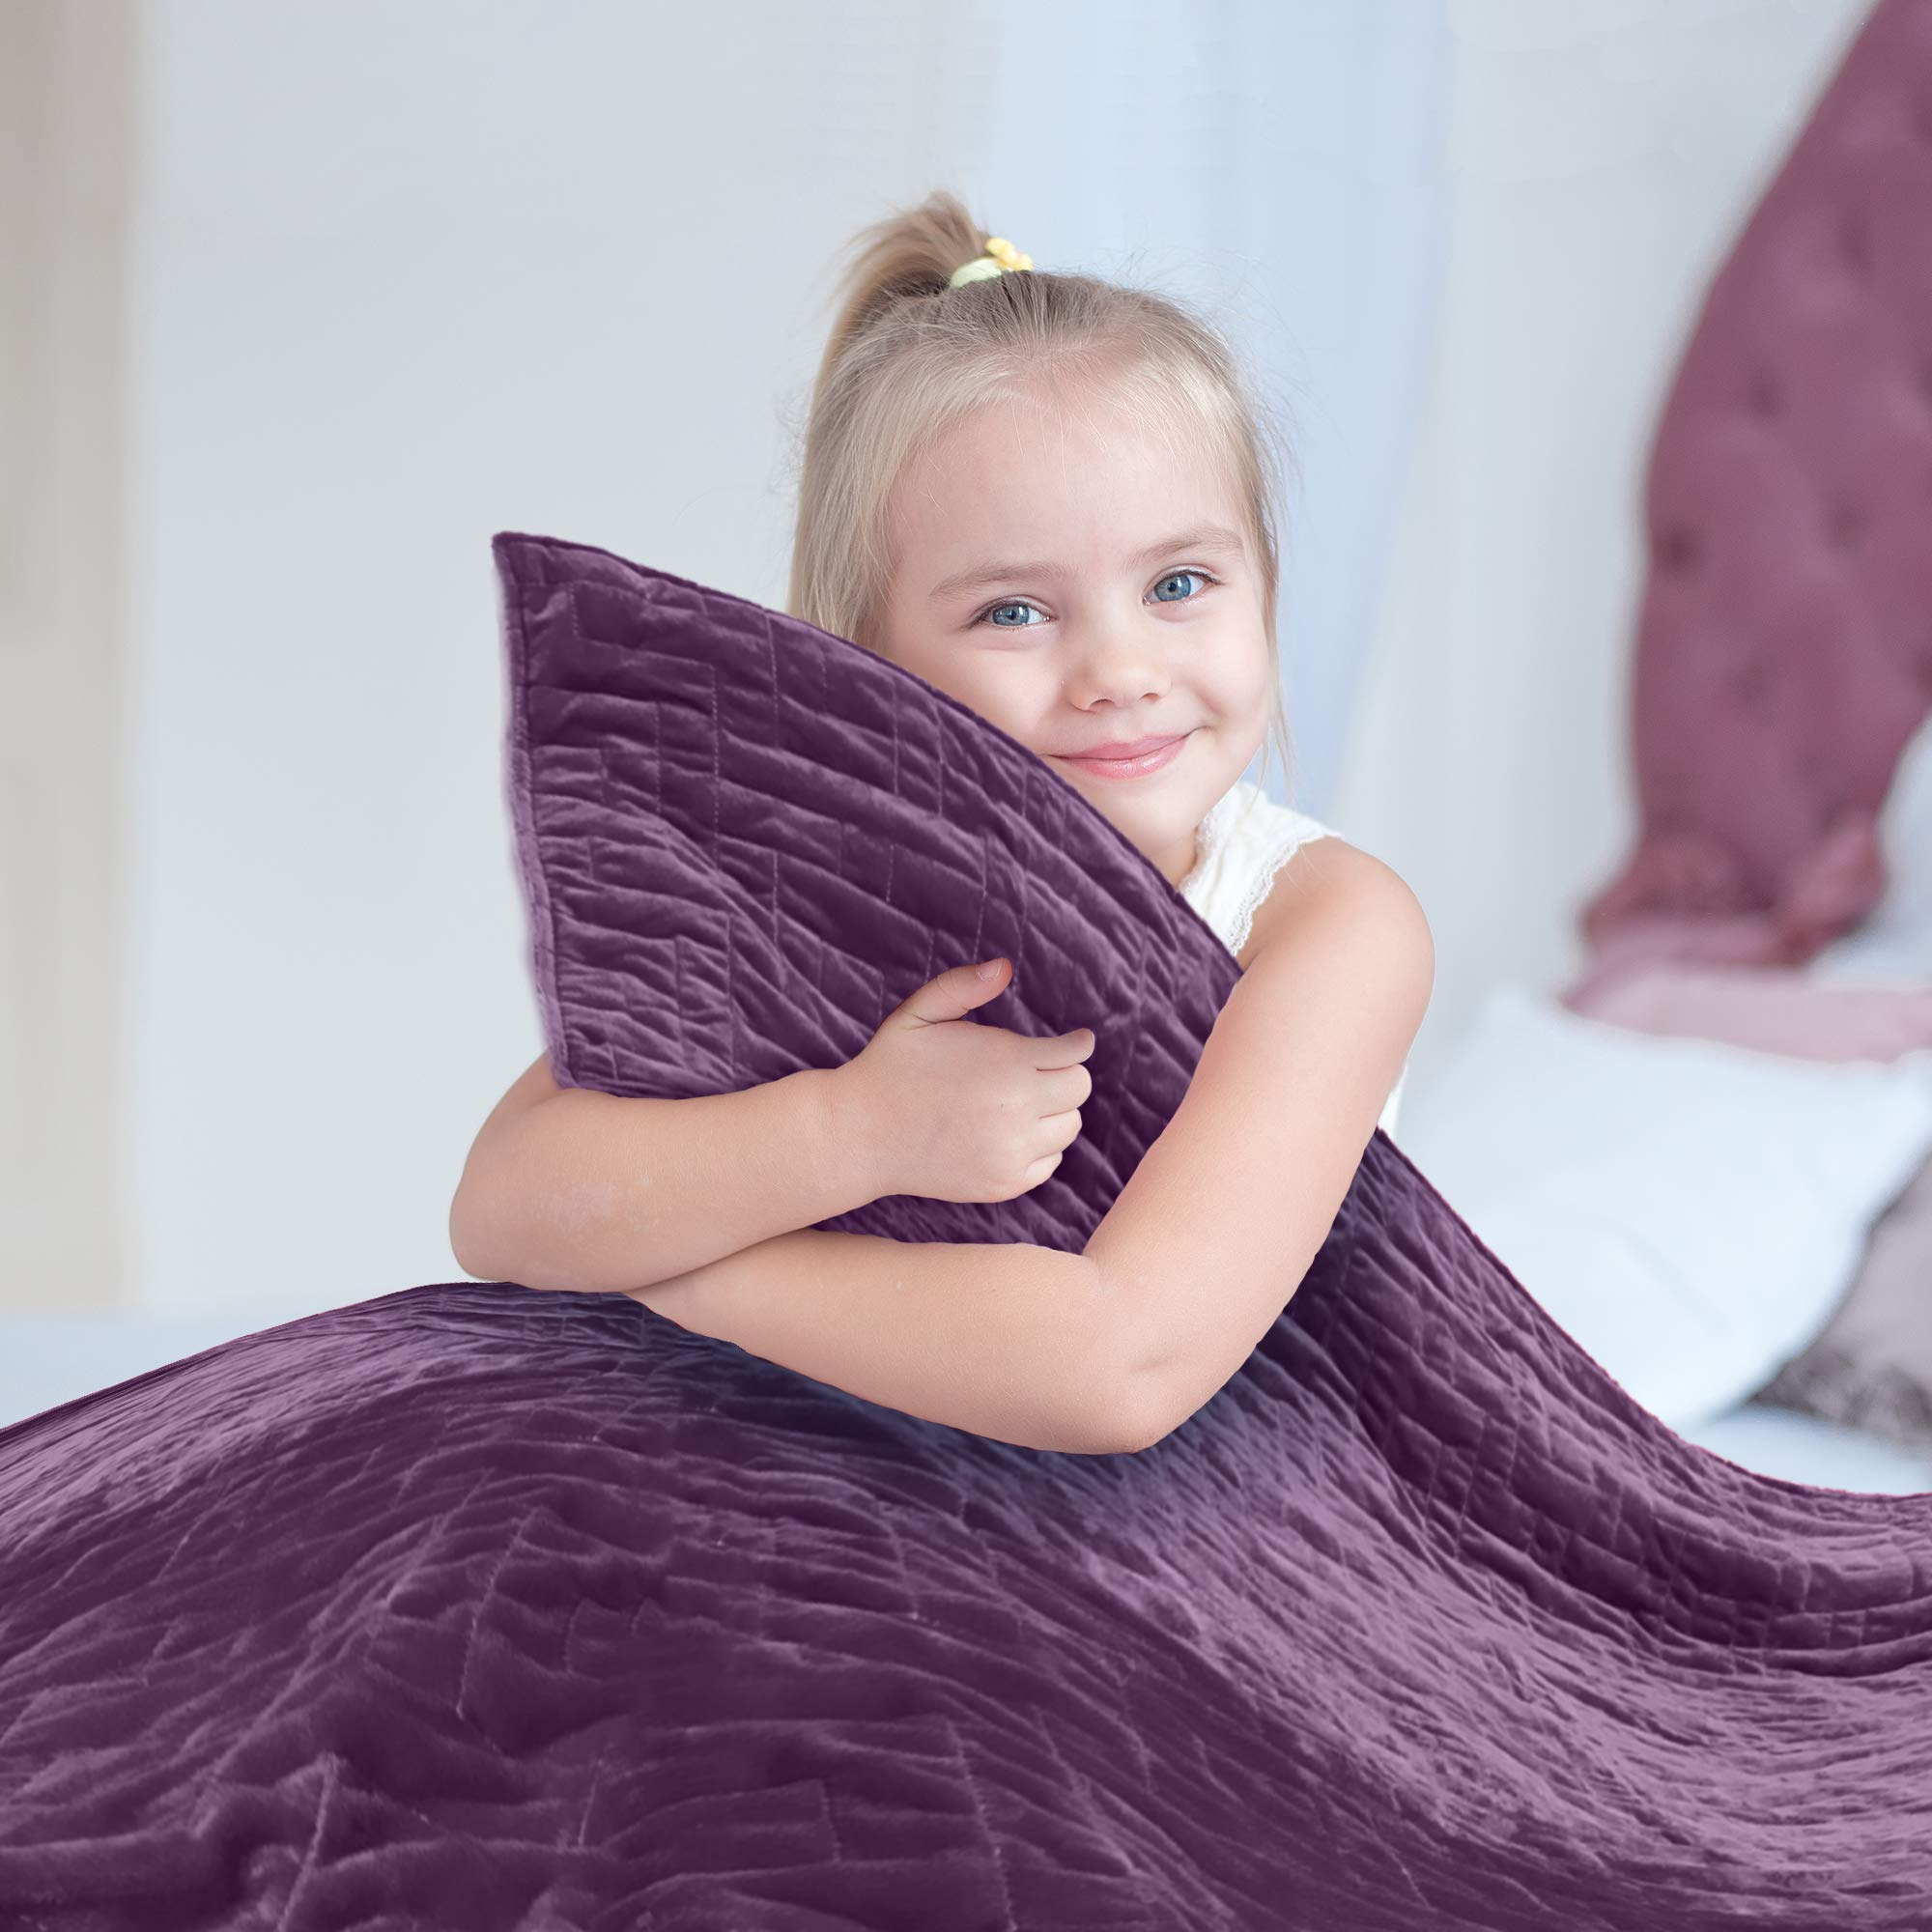 Weighted Blanket for Kids 5 lb, Cool Heavy Blanket for Children 30-40 lbs, Soft Purple Duvet Cover, Premium Cotton with Glass Beads, Perfect for Boys and Girls, Sensory Blankets, Size 36x48in. by Mindful Grasshopper